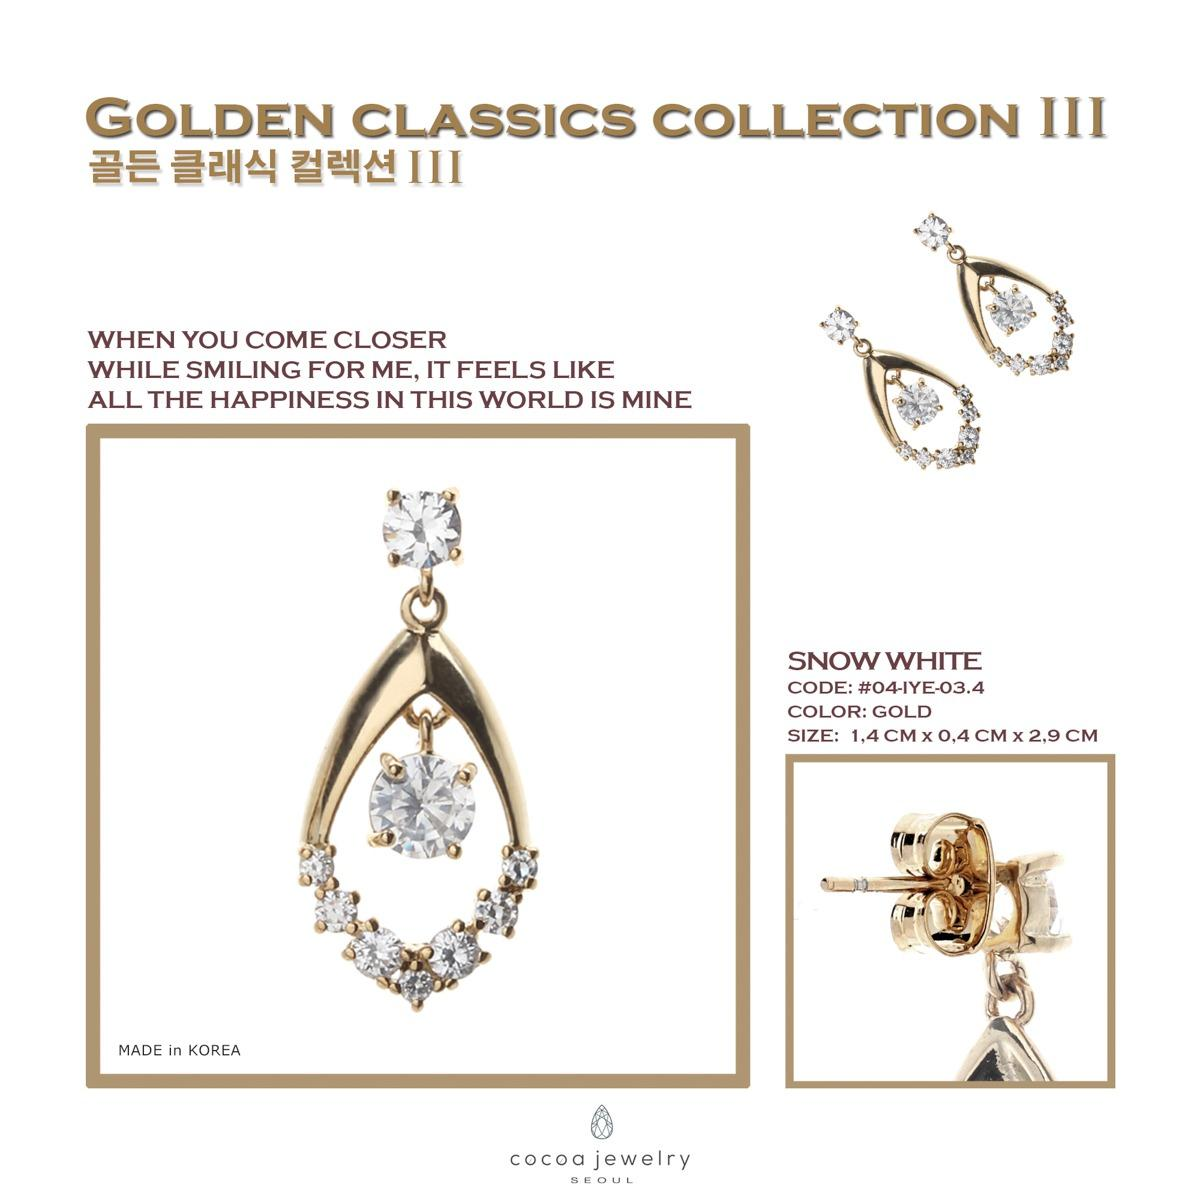 Fitur Cocoa Jewelry Snow White Set Collection Dan Harga Terbaru The Special Gift Anting Elegant Love 3